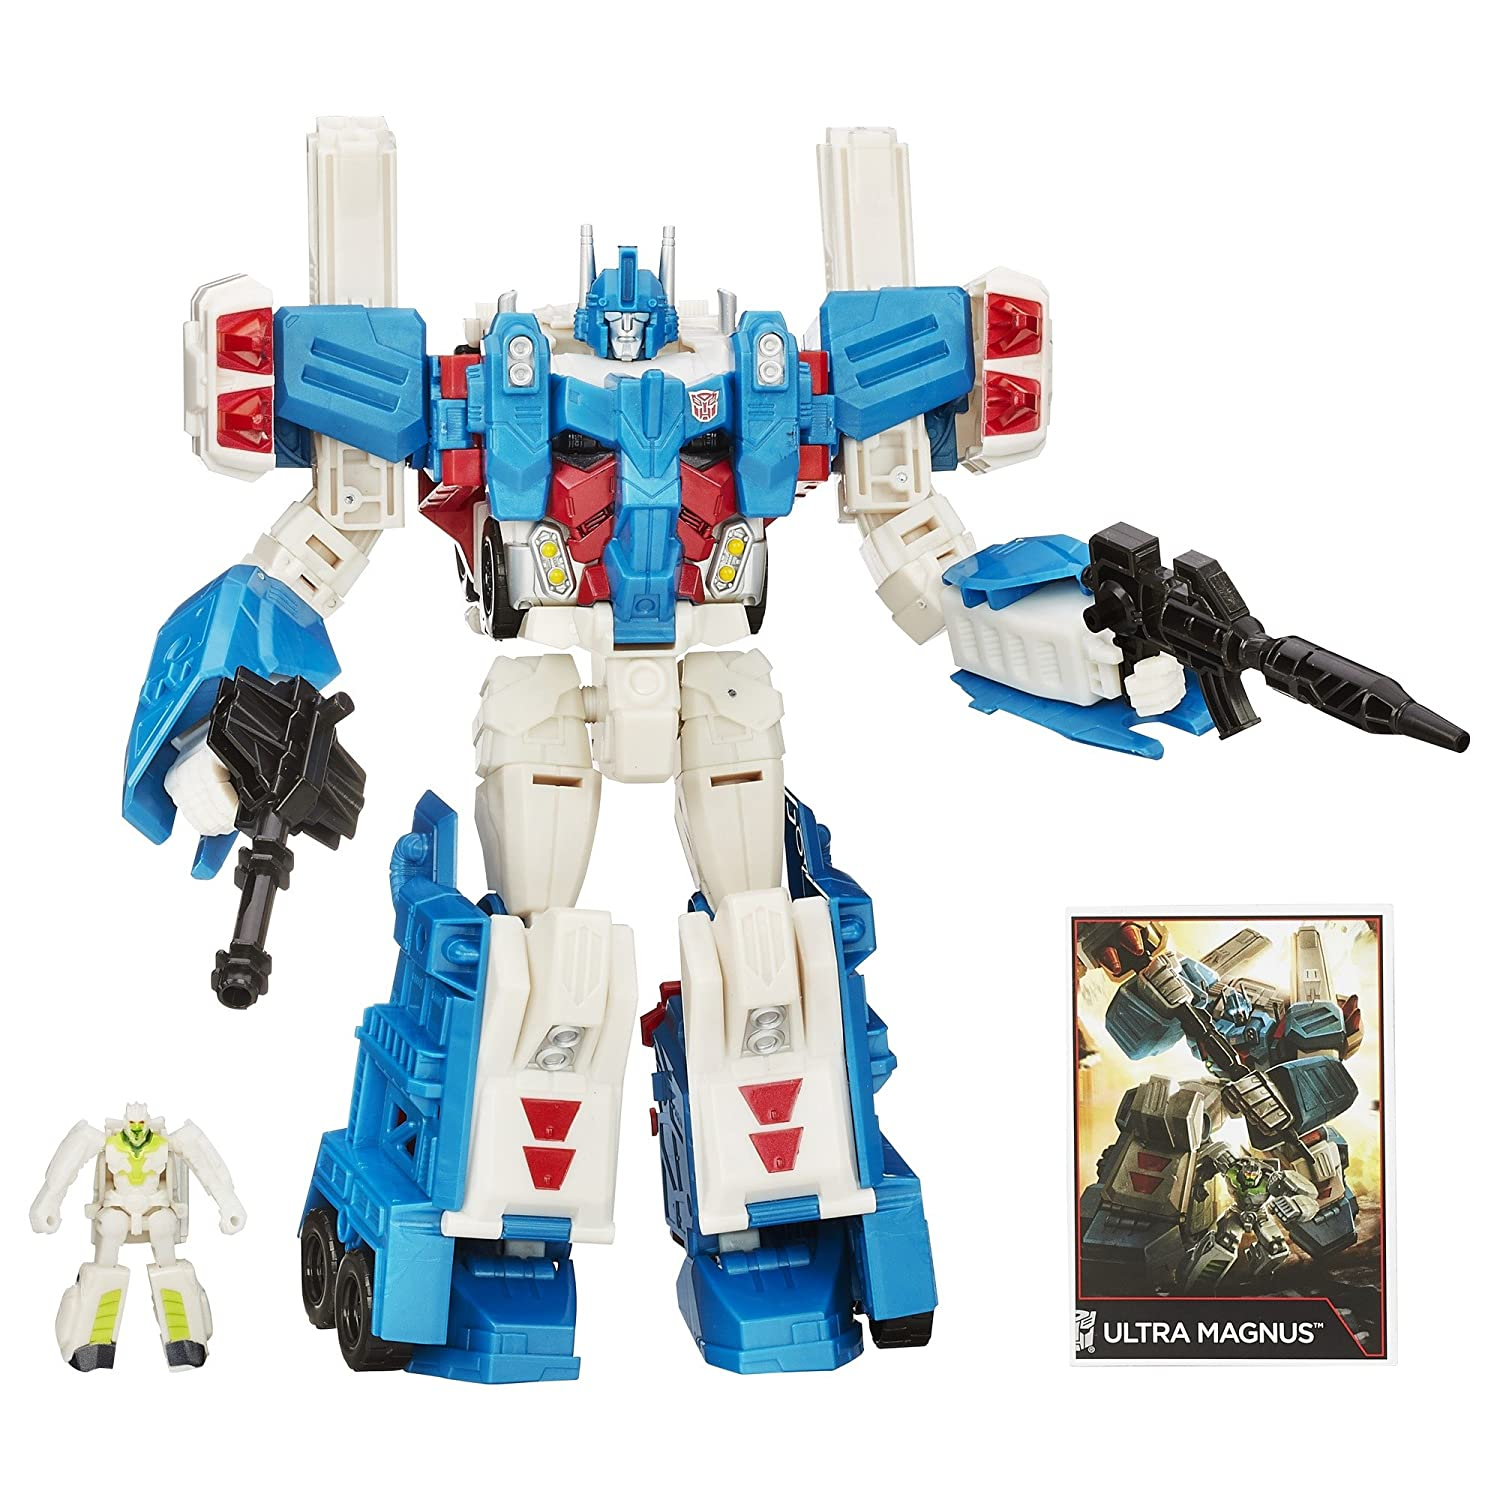 Transformers Generations Leader Class Ultra Magnus Figure(Discontinued by manufacturer) Hasbro B2443AS0